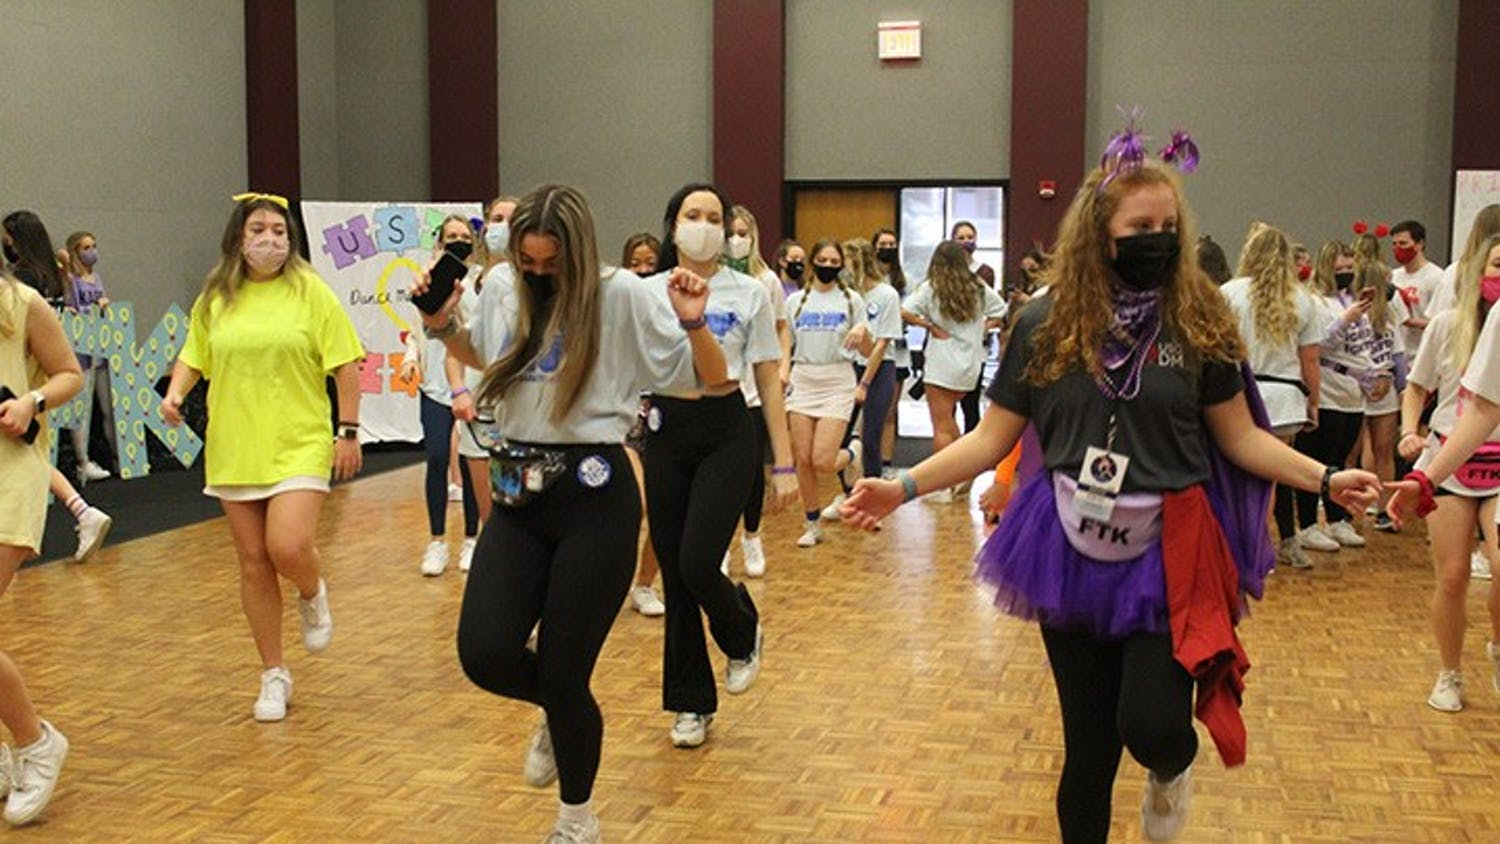 """Dance Marathon attendees and volunteers doing the """"Cha Cha Slide."""""""